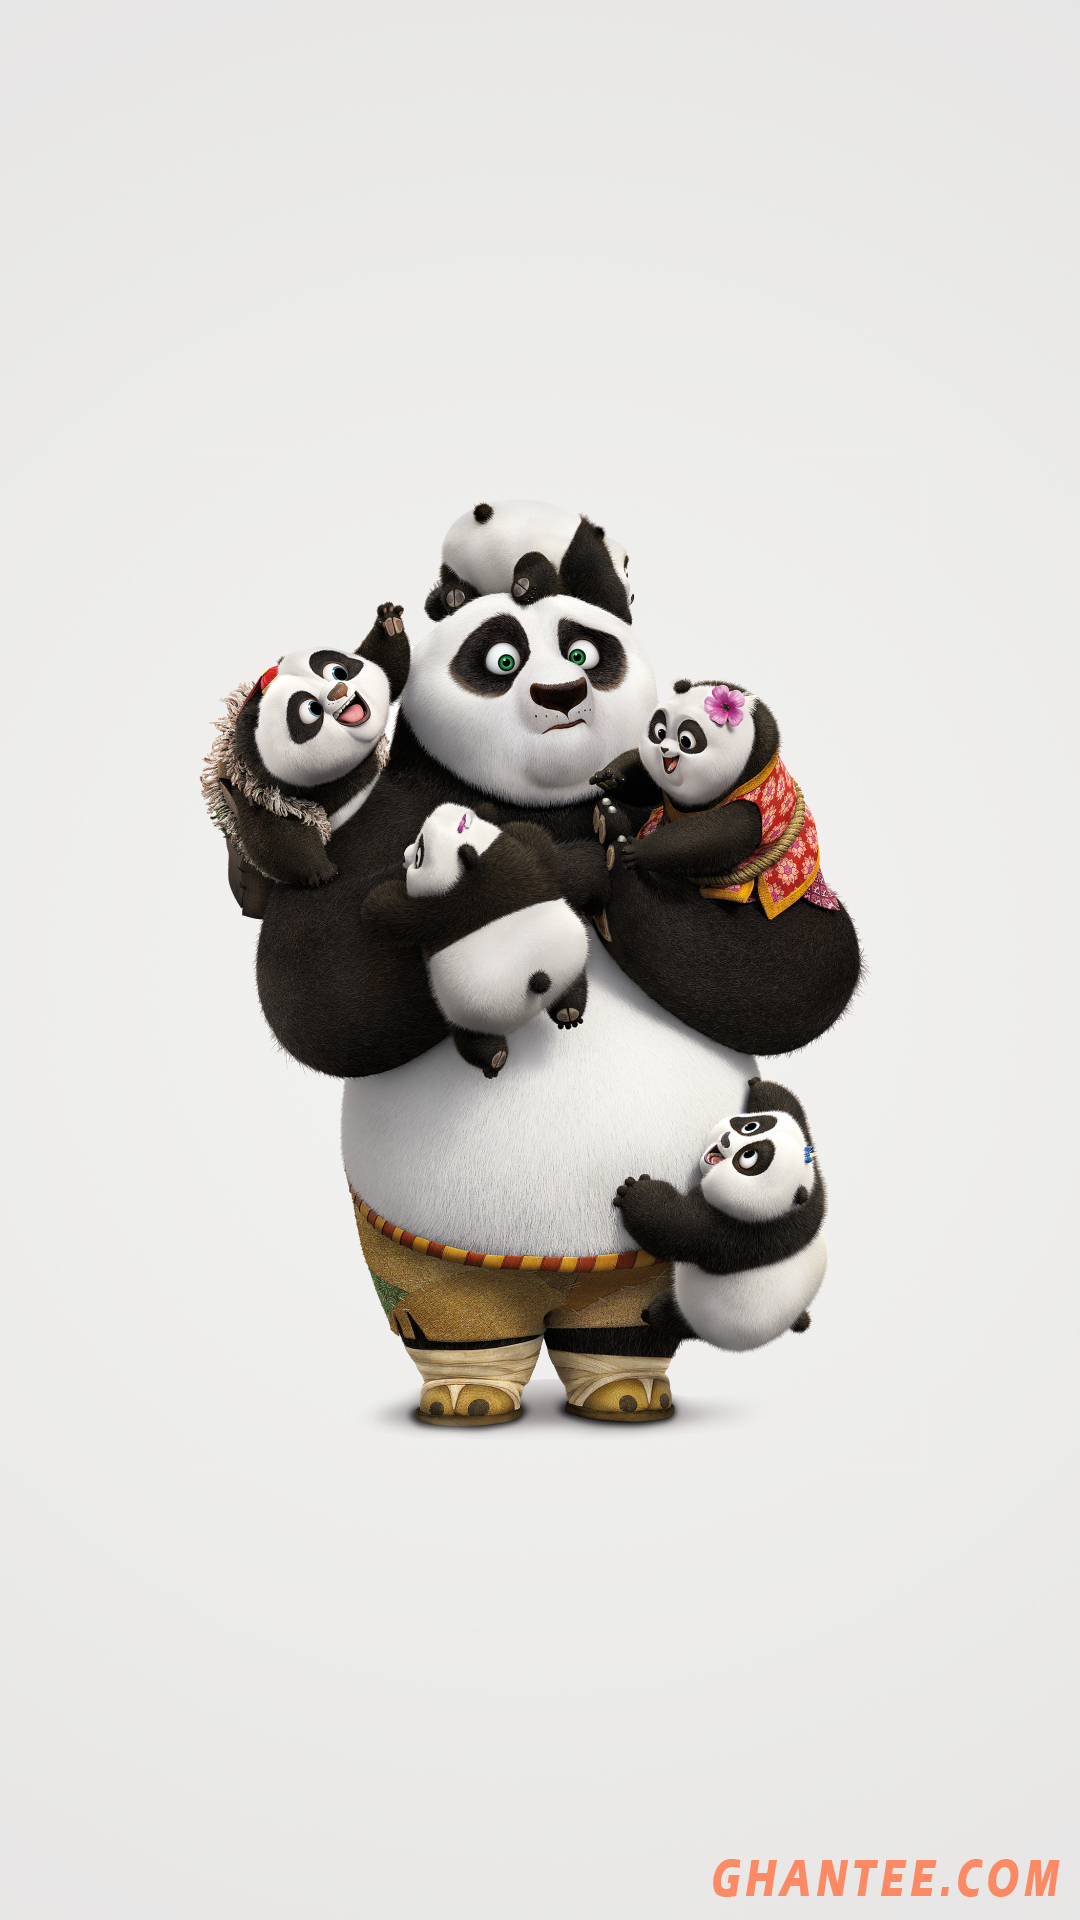 kung fu panda off white phone wallpaper HD